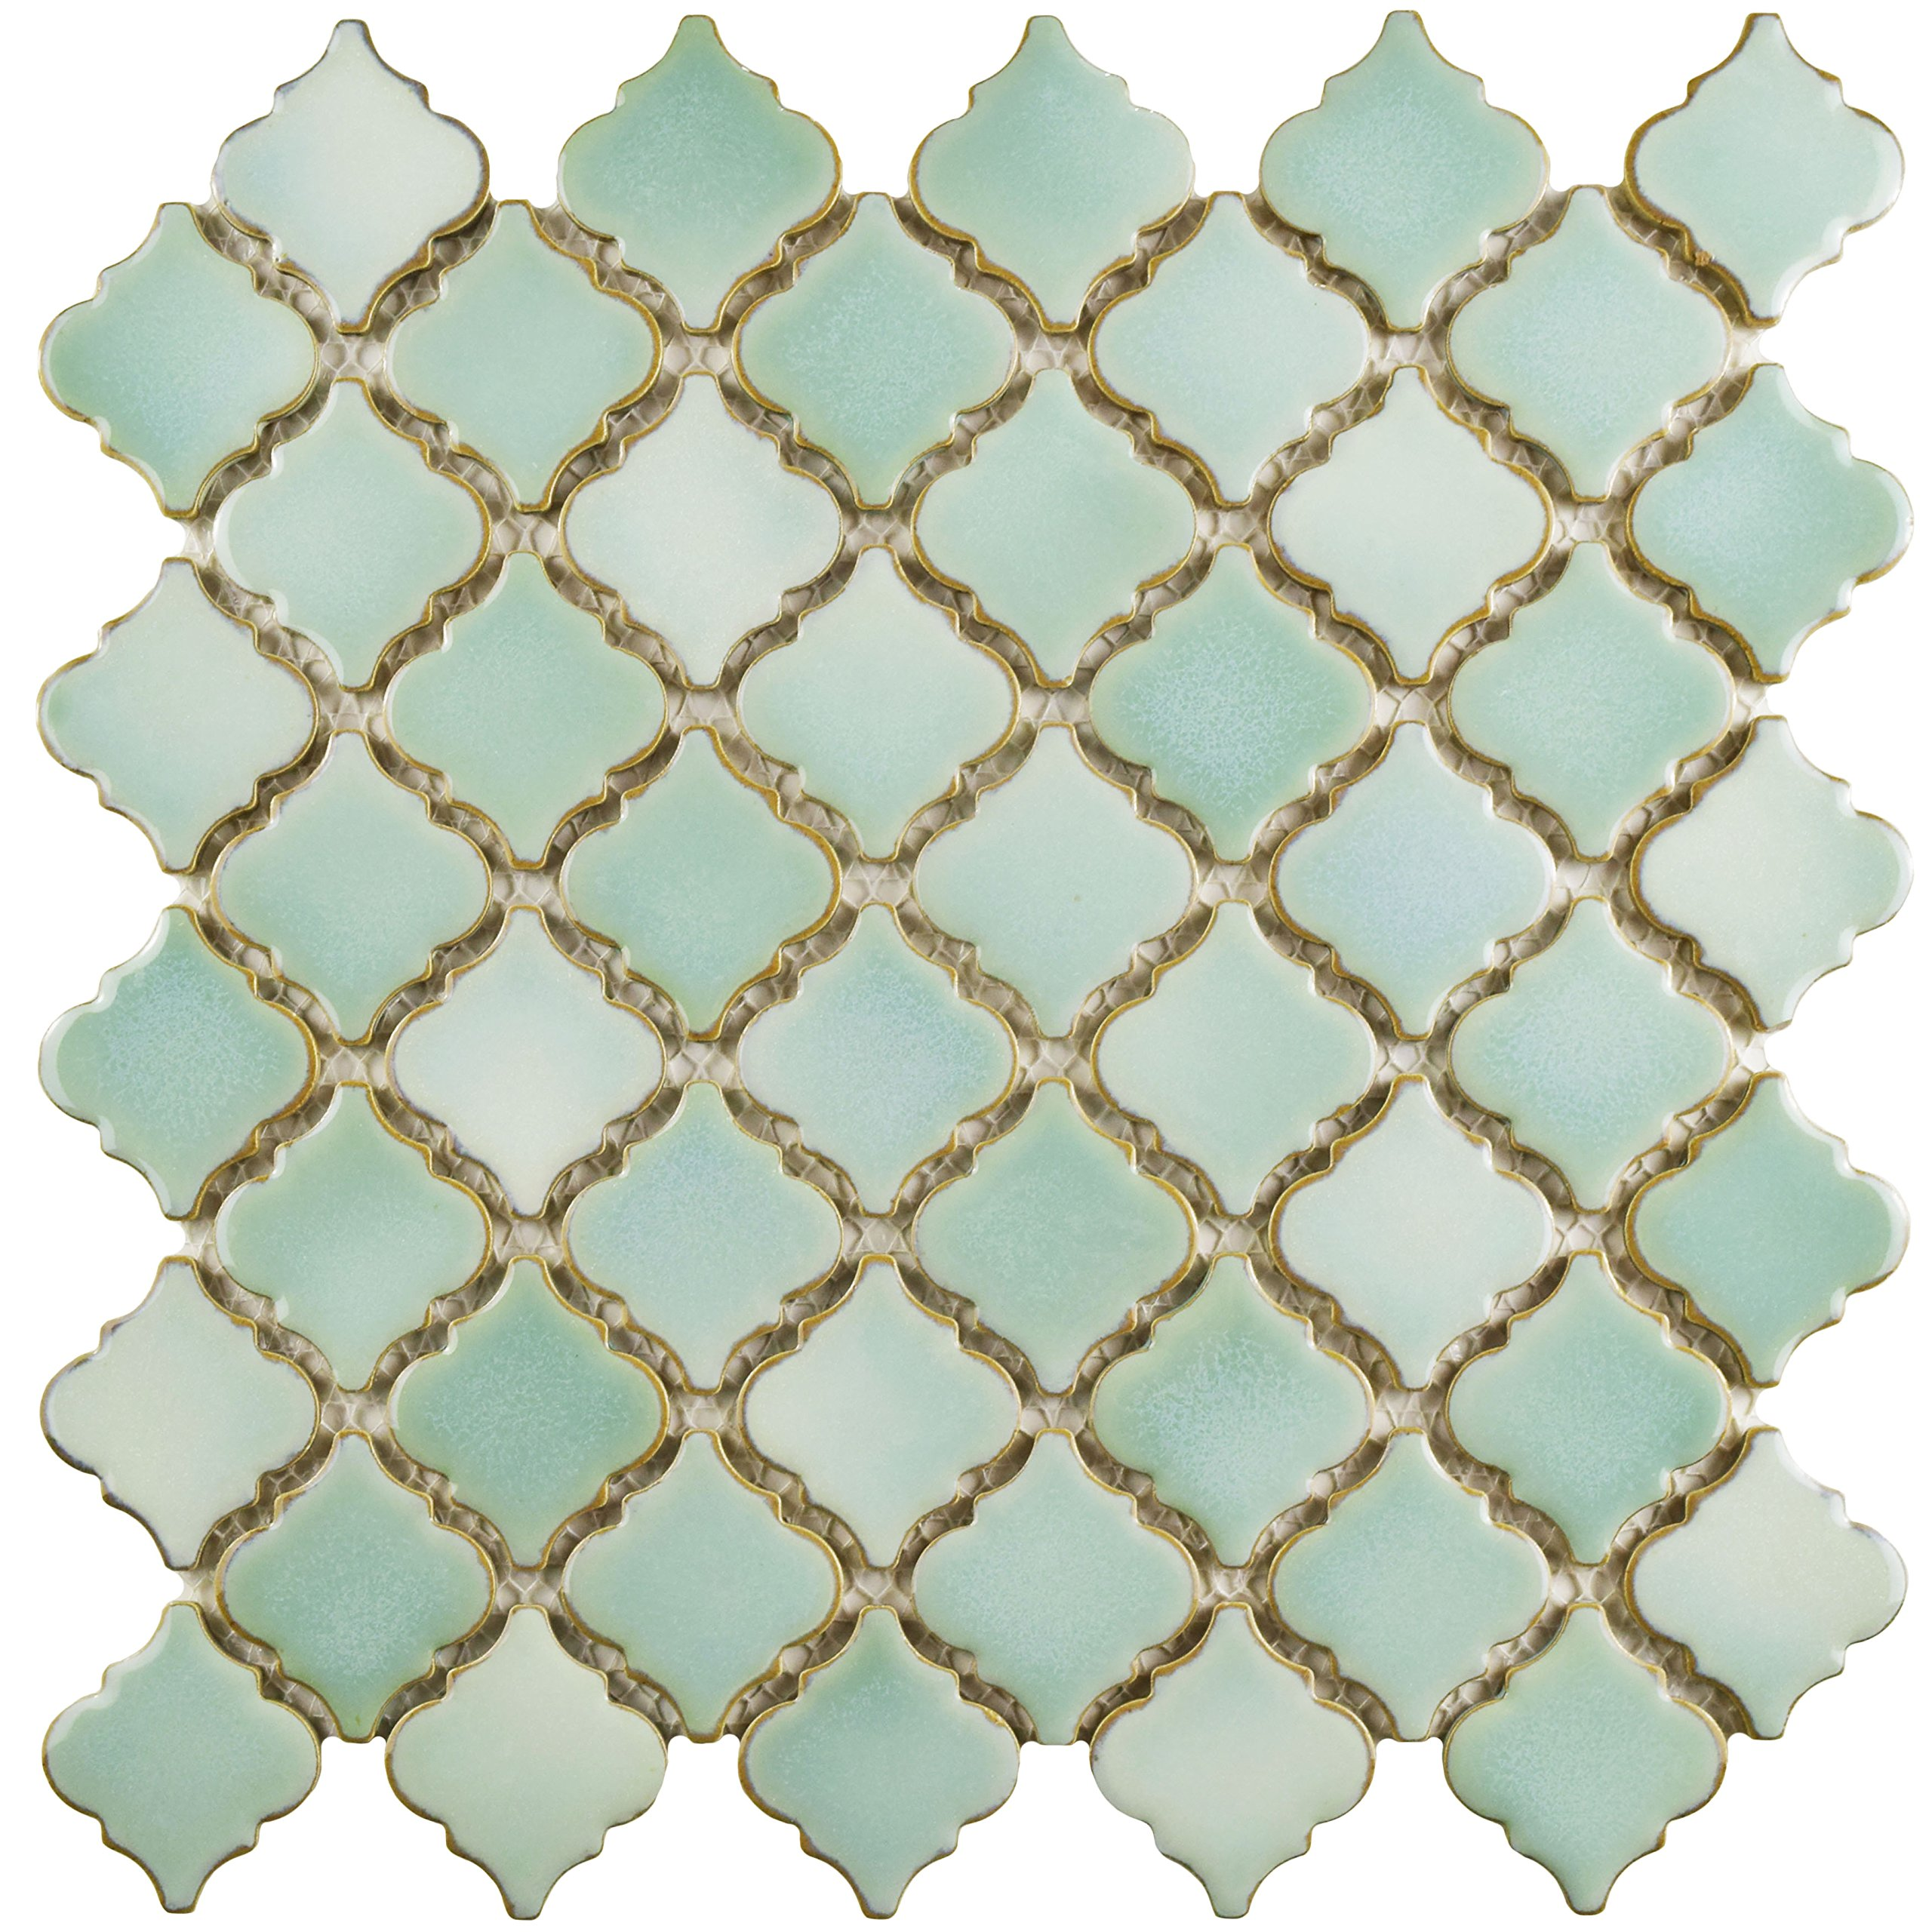 SomerTile FKOLTR32 Tinge Porcelain Mosaic Floor and Wall, 12.37'' x 12.5'', Mint Green Tile, 10 Piece